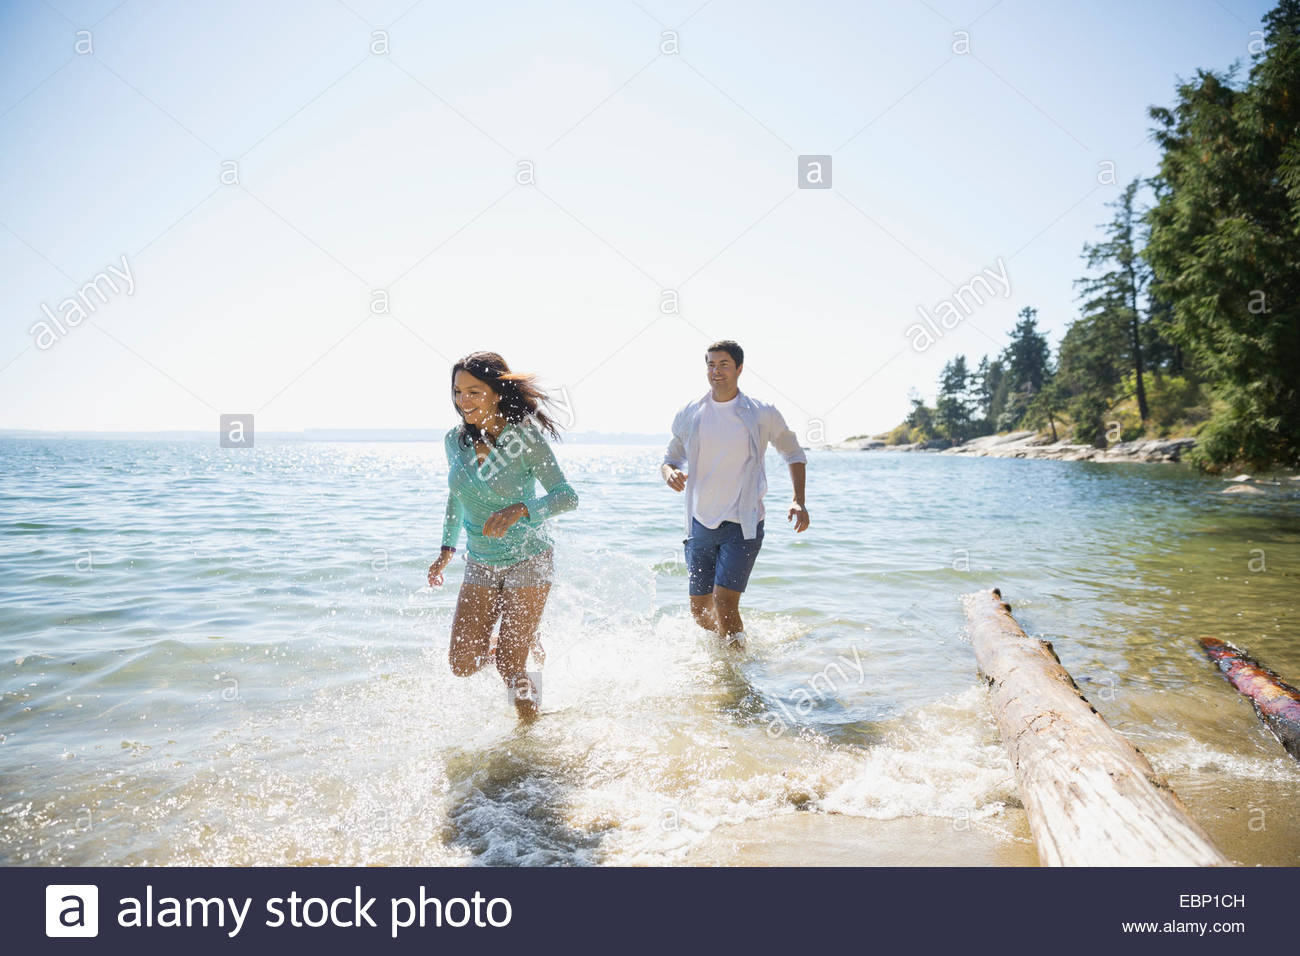 Couple splashing in ocean Photo Stock